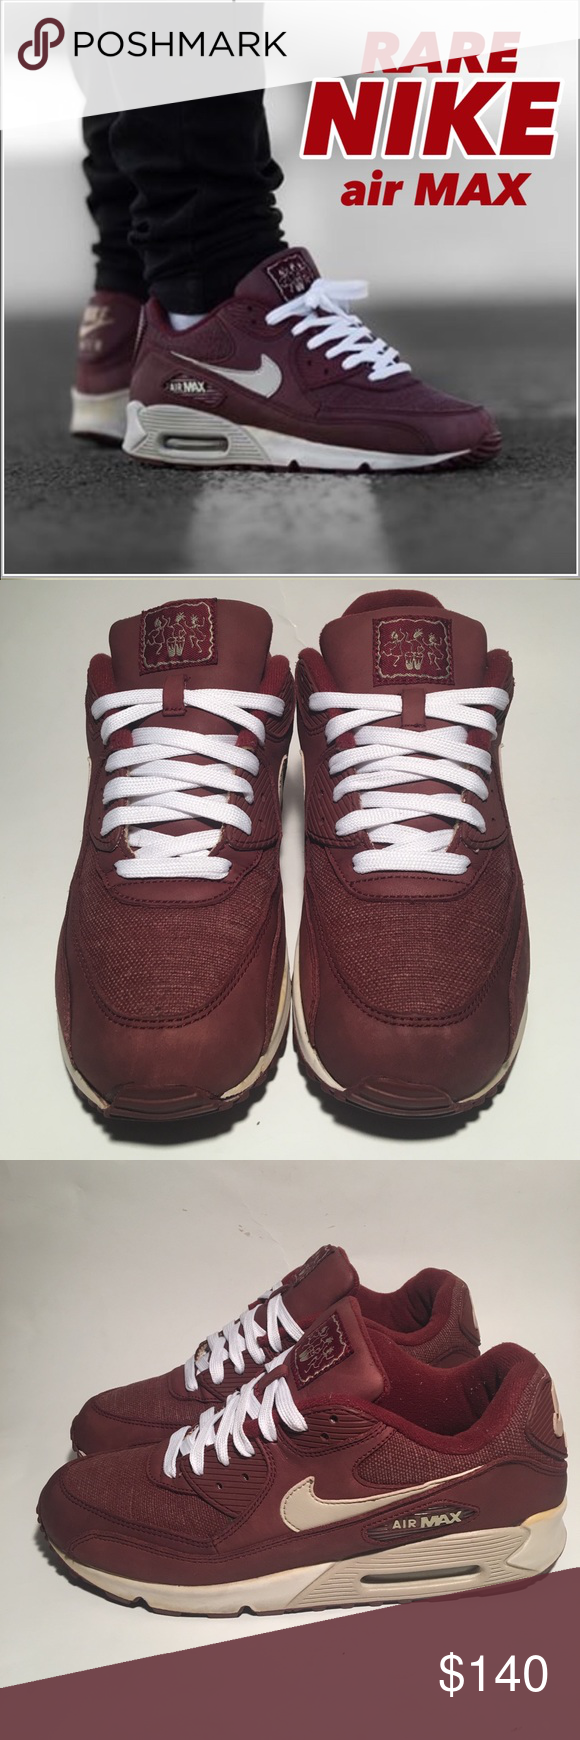 """quality design fc40f 213d6 Very """"RARE"""" - Nike Air Max SIZE 10 nike air max 90 redwood island drum (RARE  Collectors item) Nike Shoes Sneakers"""